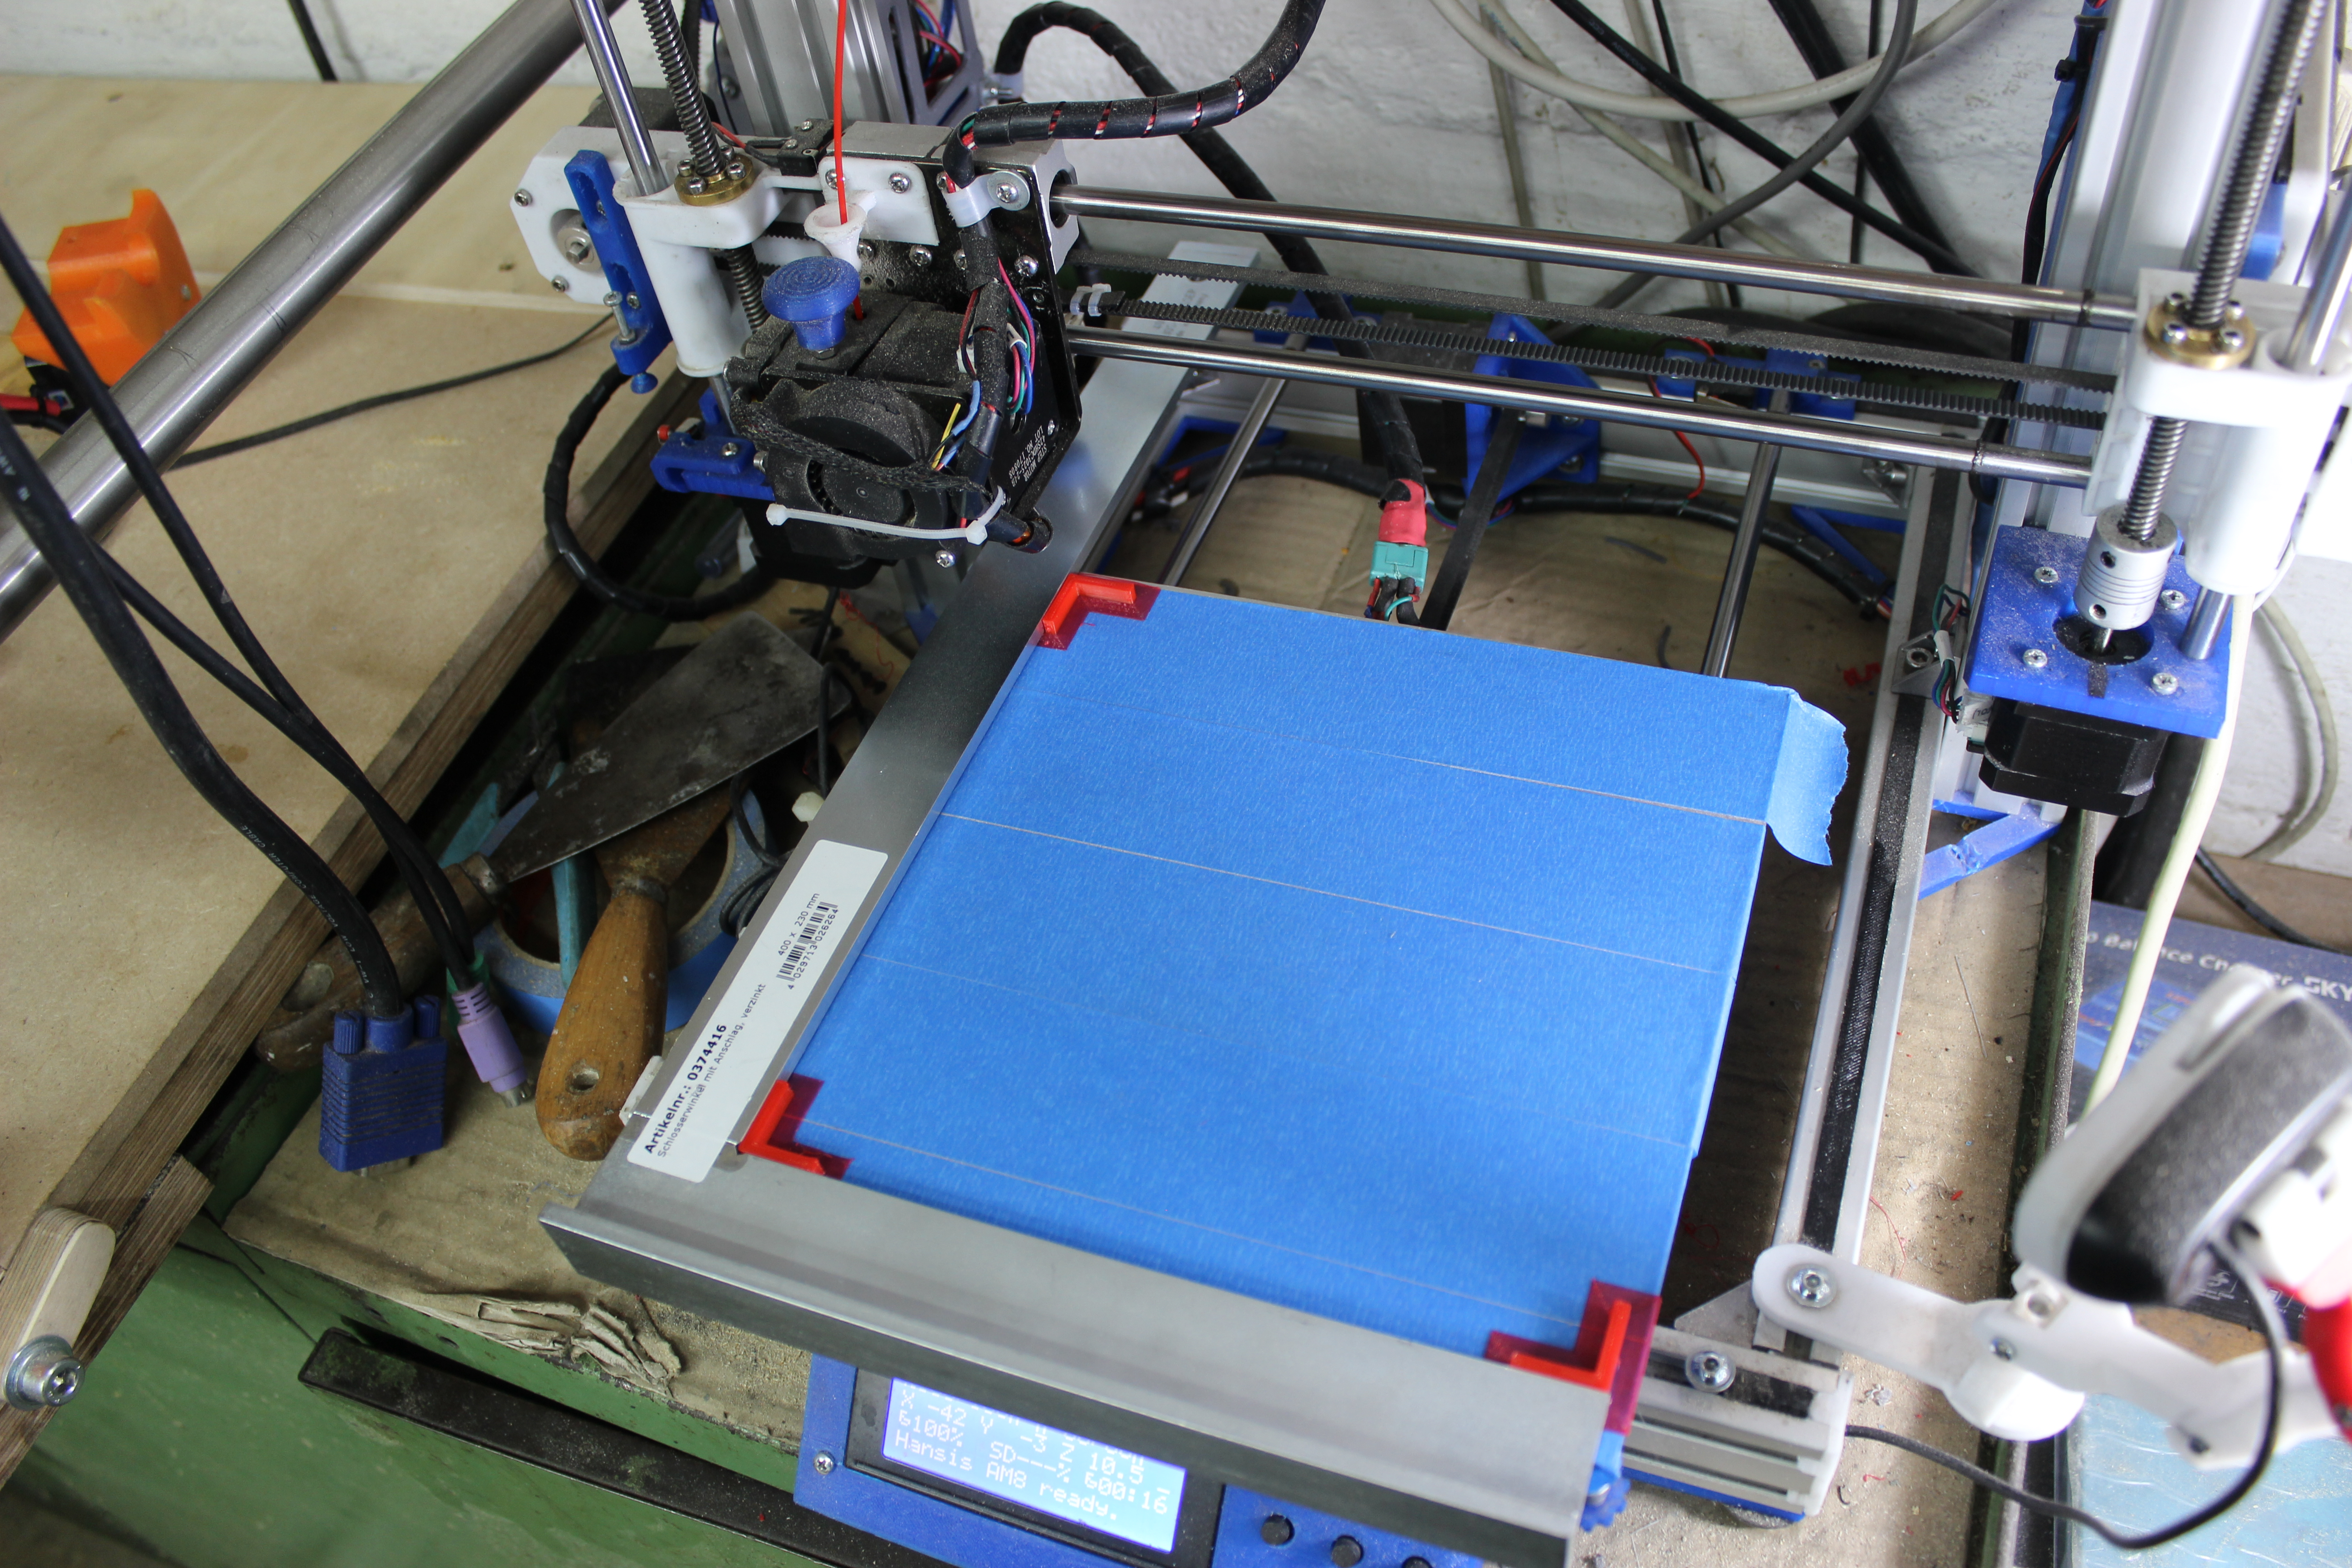 checking if the 3d-printer prints perpendicular